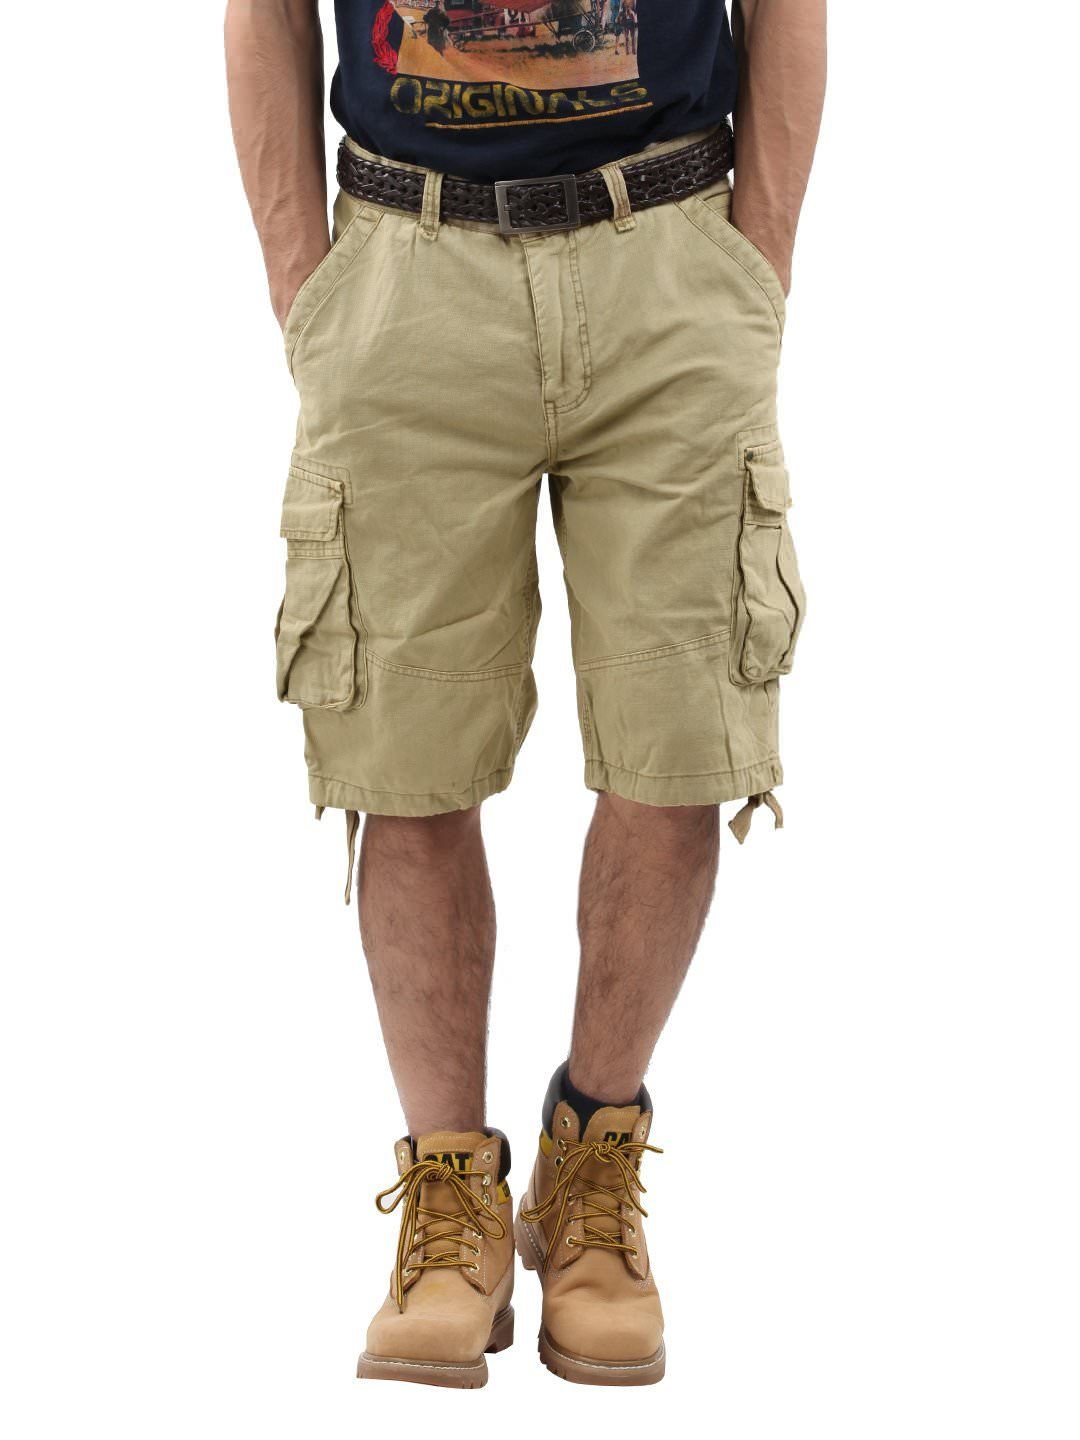 Cargo Shorts Men Outfit Cargo shorts for men outfits | Youthful Mens Fashion | Pinterest | Man ...